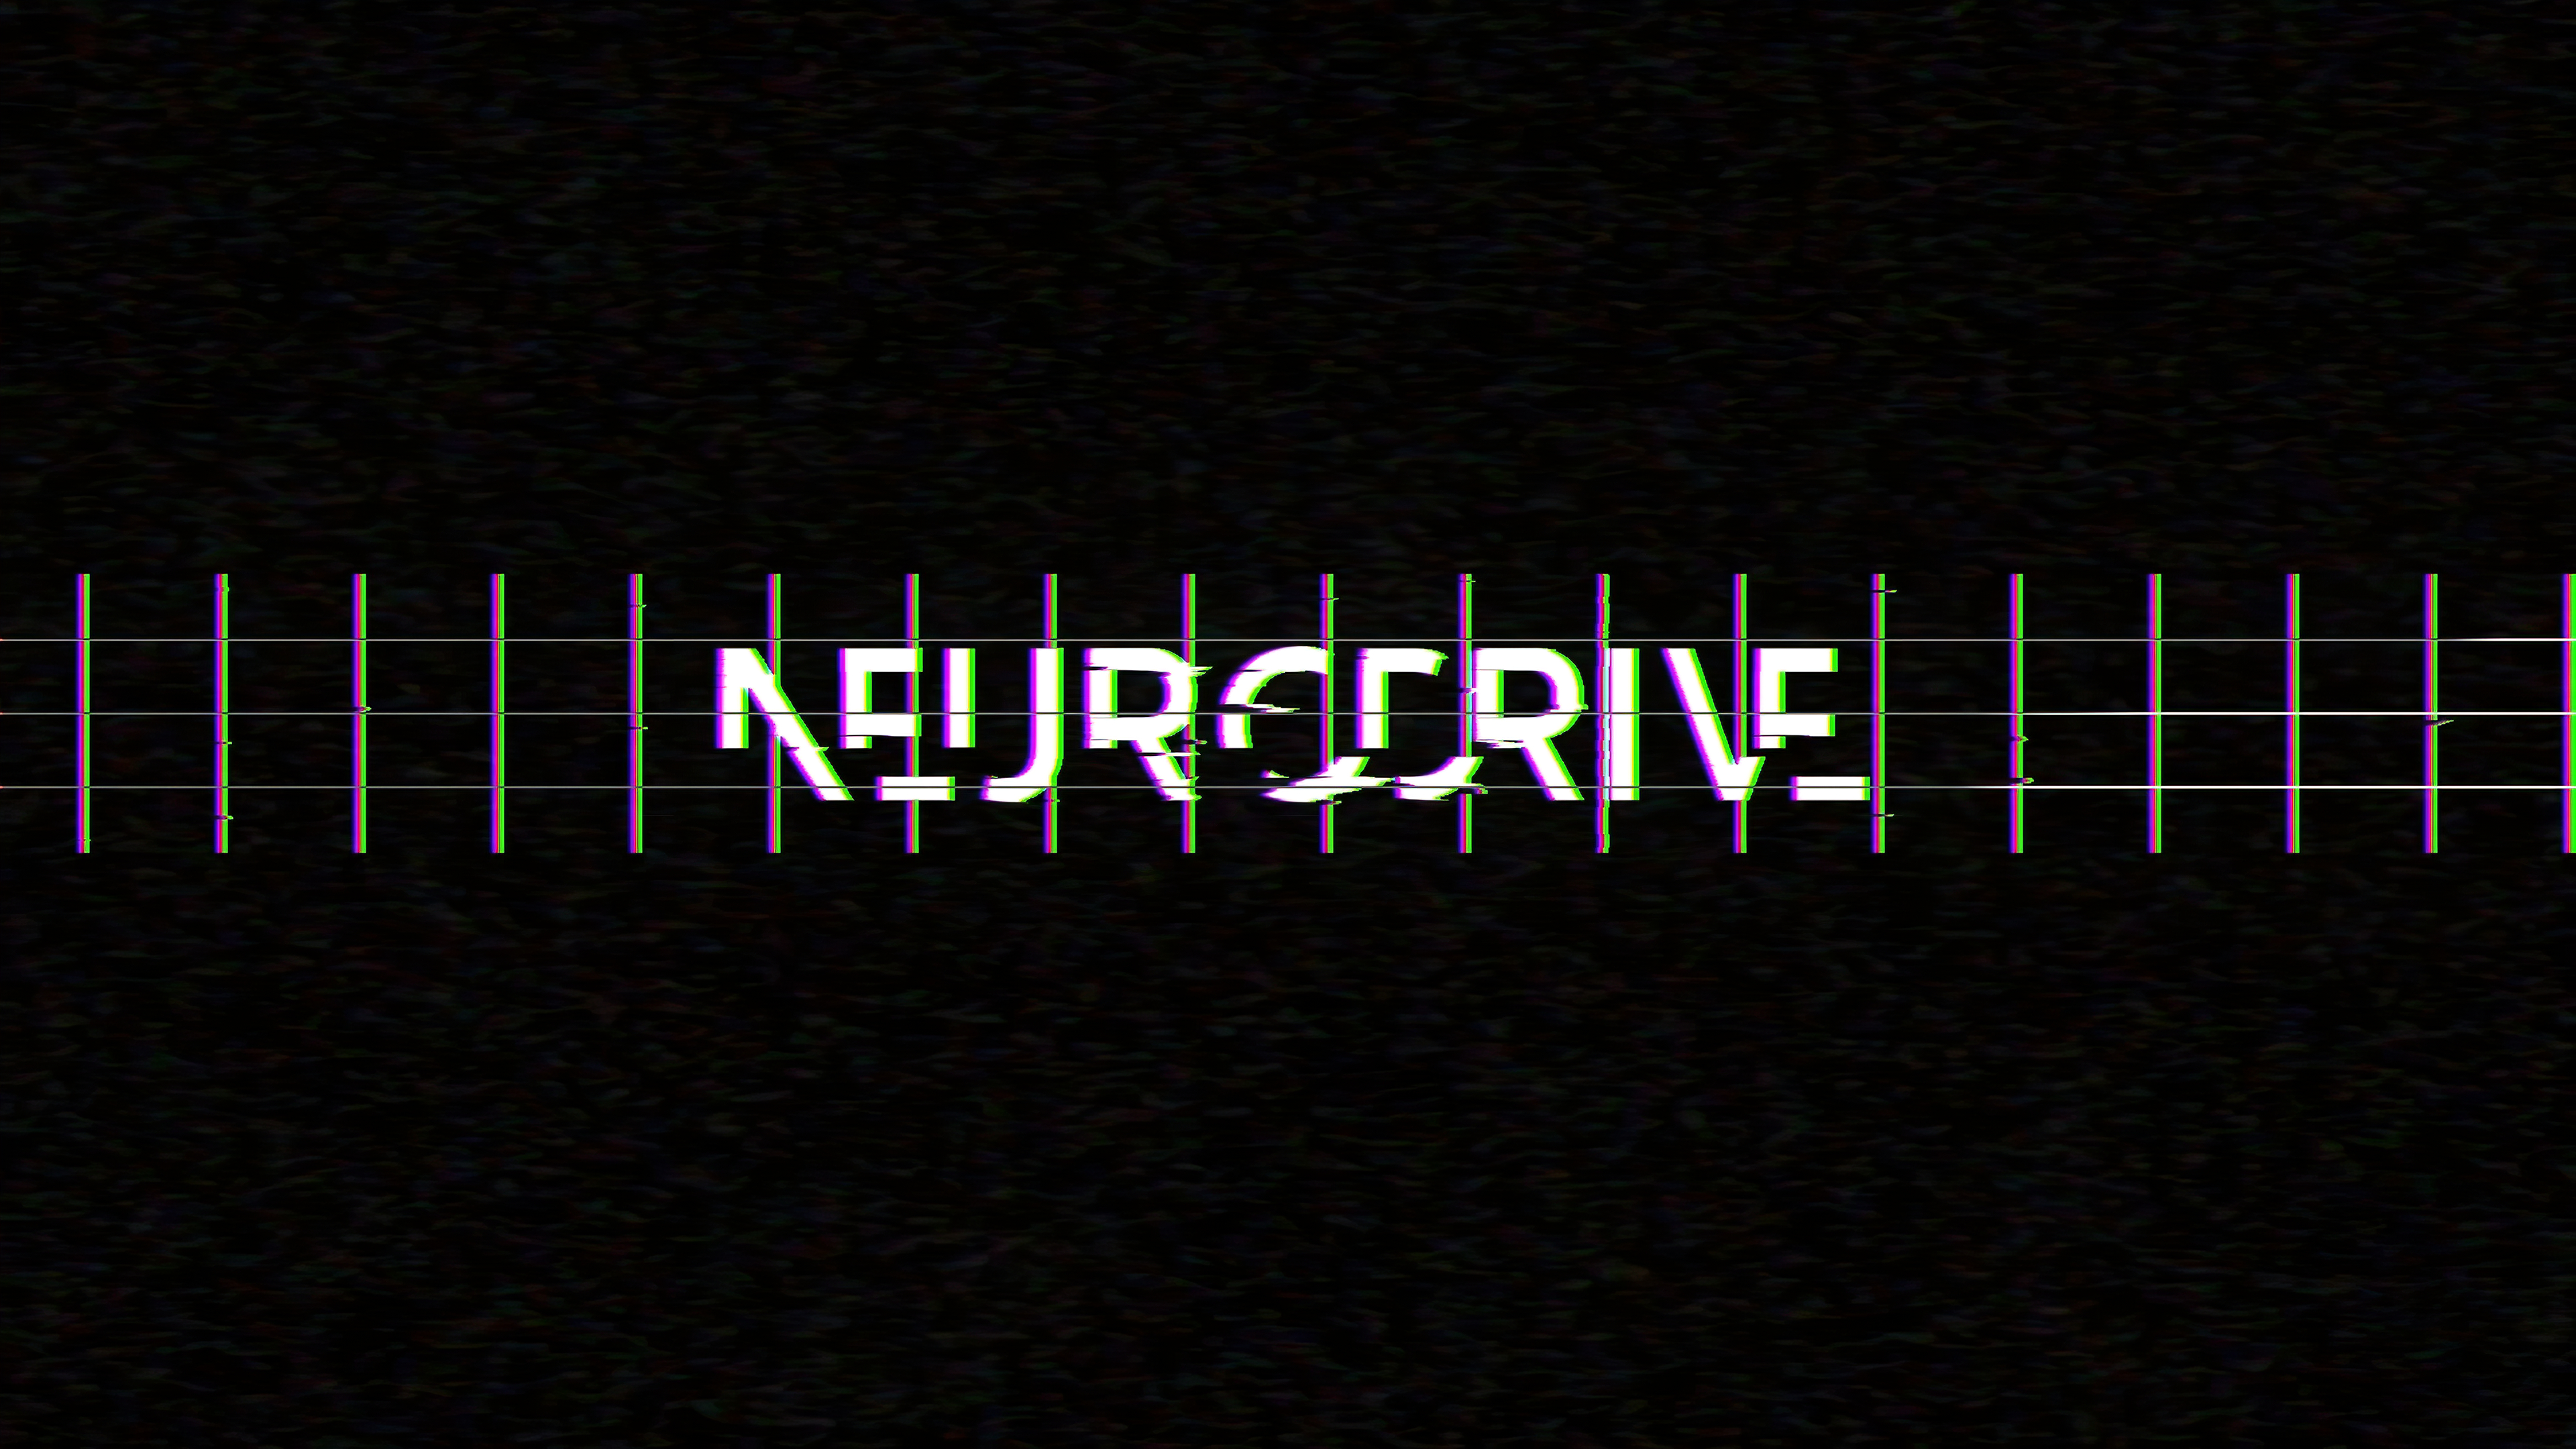 NEOMOTIONSTUDIO Neurodrive Experimentalfilm